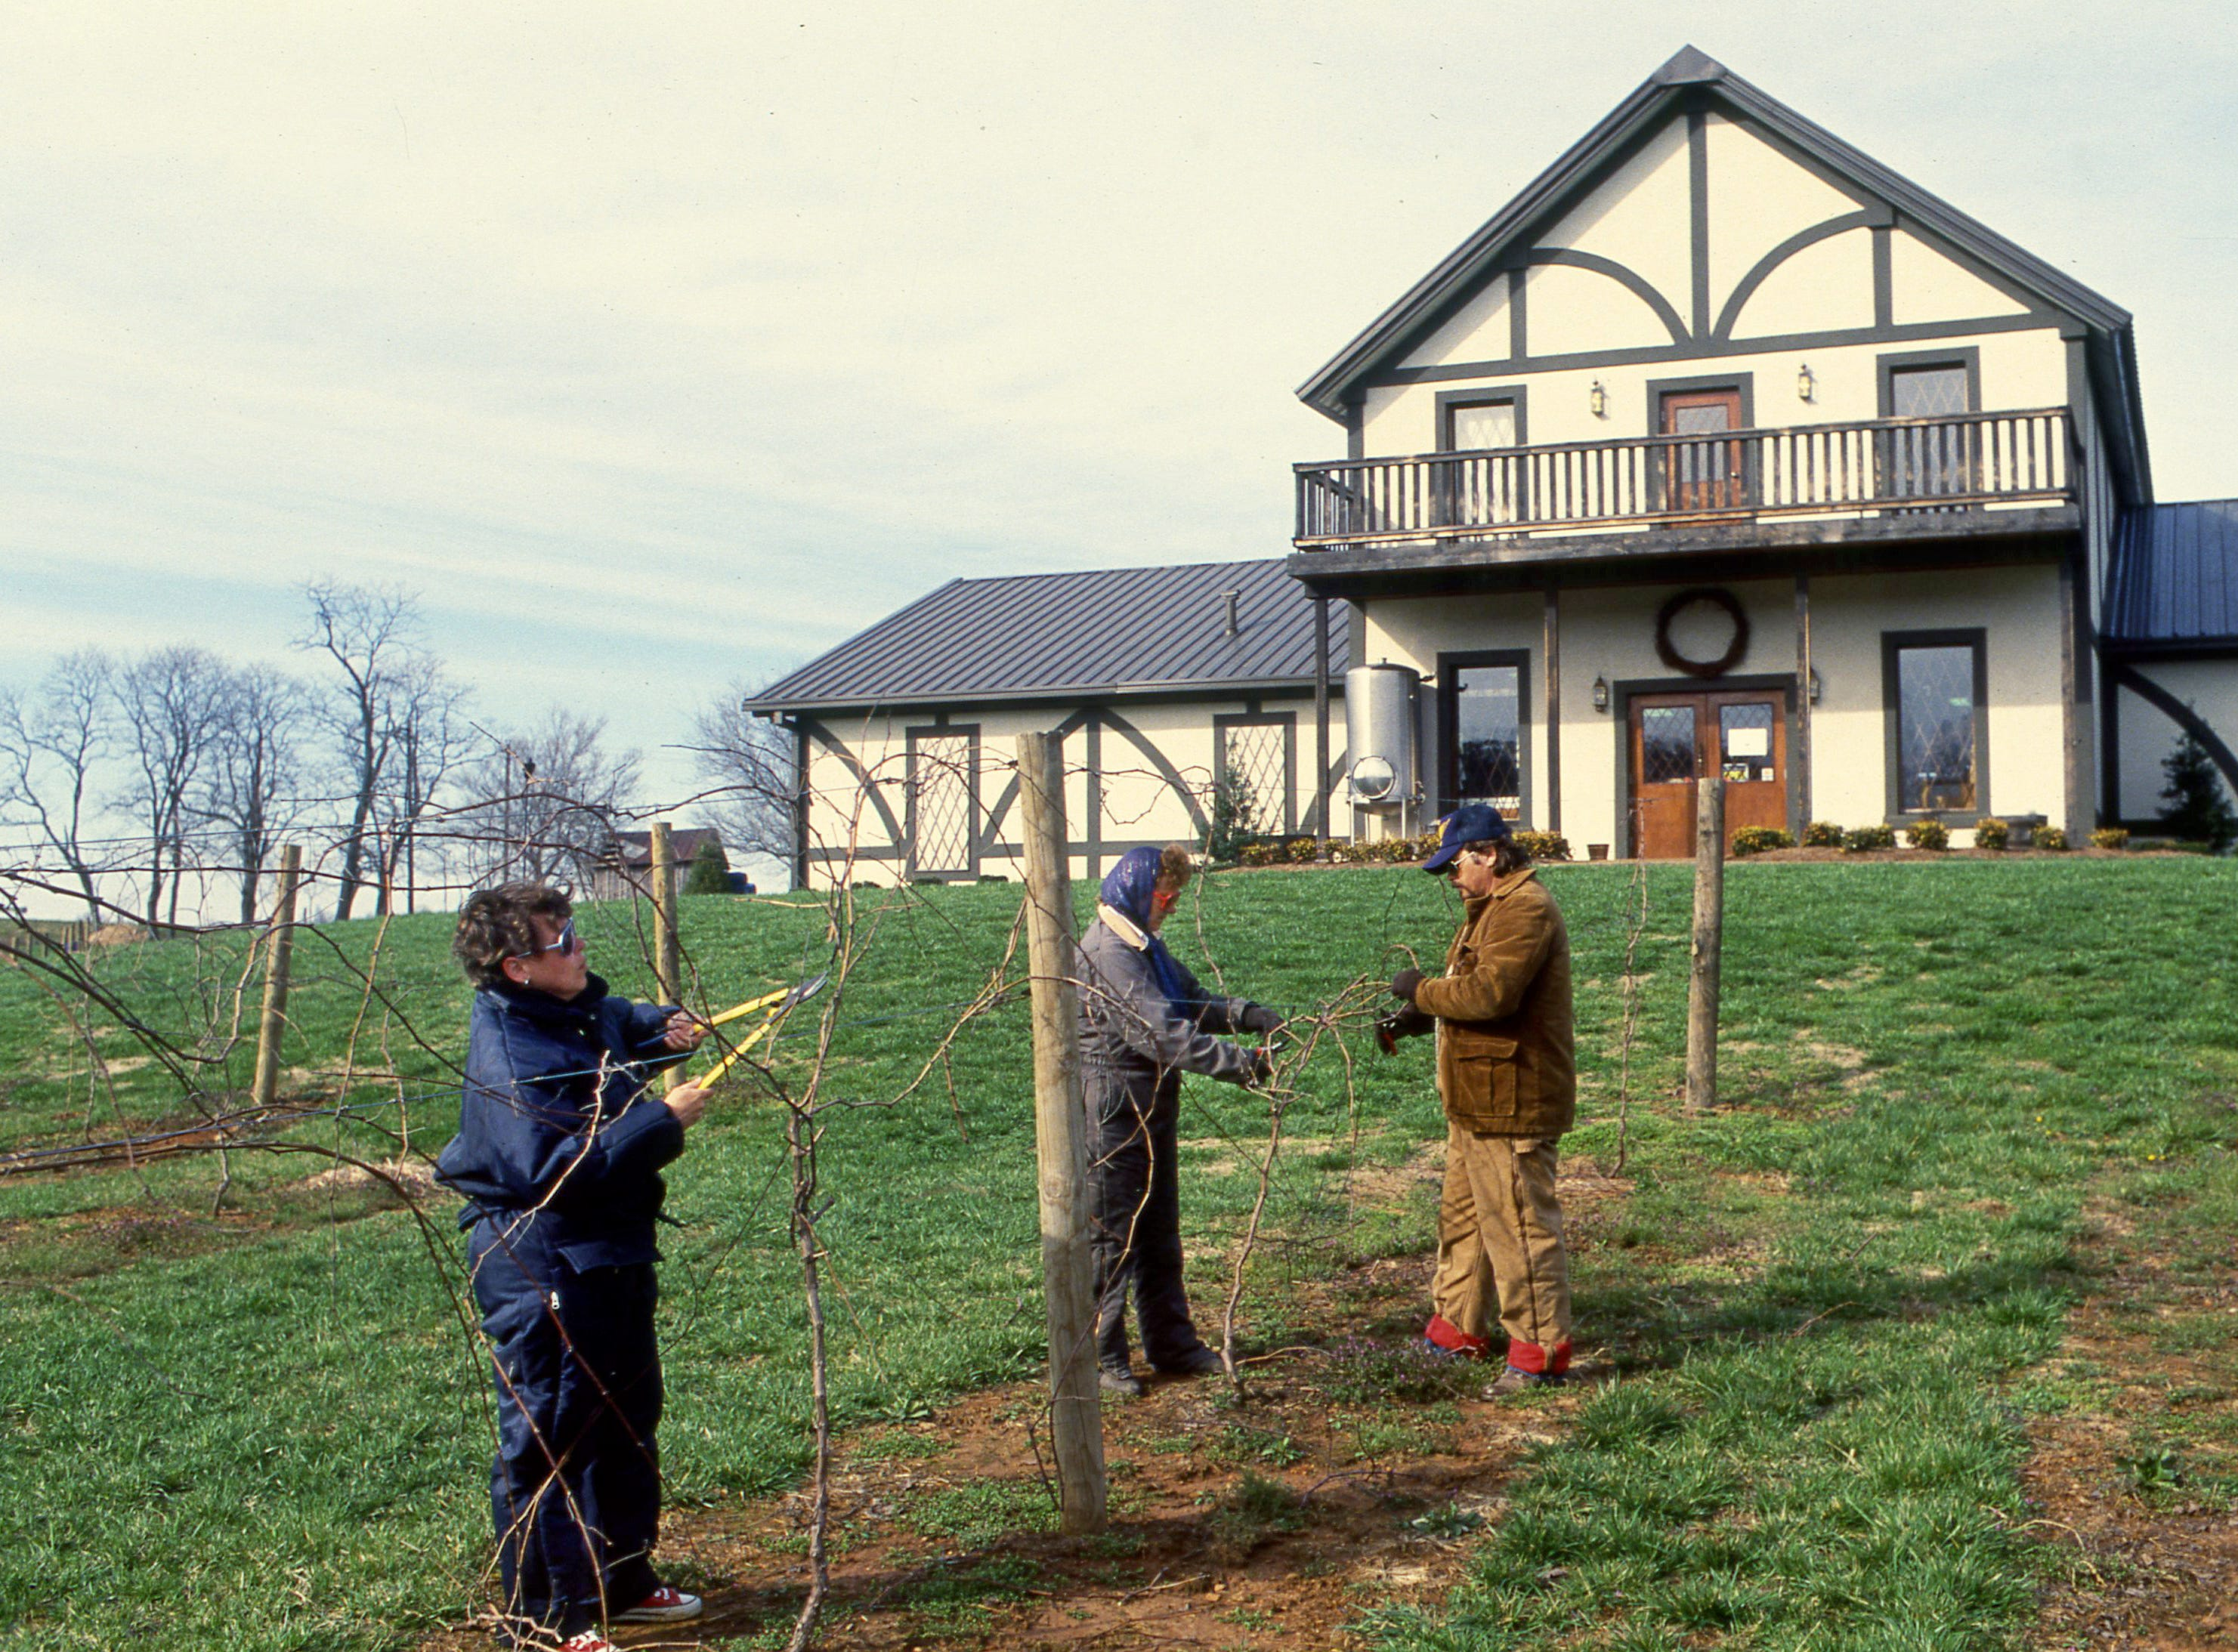 A trio of workers prune some of the 2½ acres of grapes vines growing in front of the English Tudor style Beachhaven Vineyard and Winery in Clarksville on March 22, 1989.